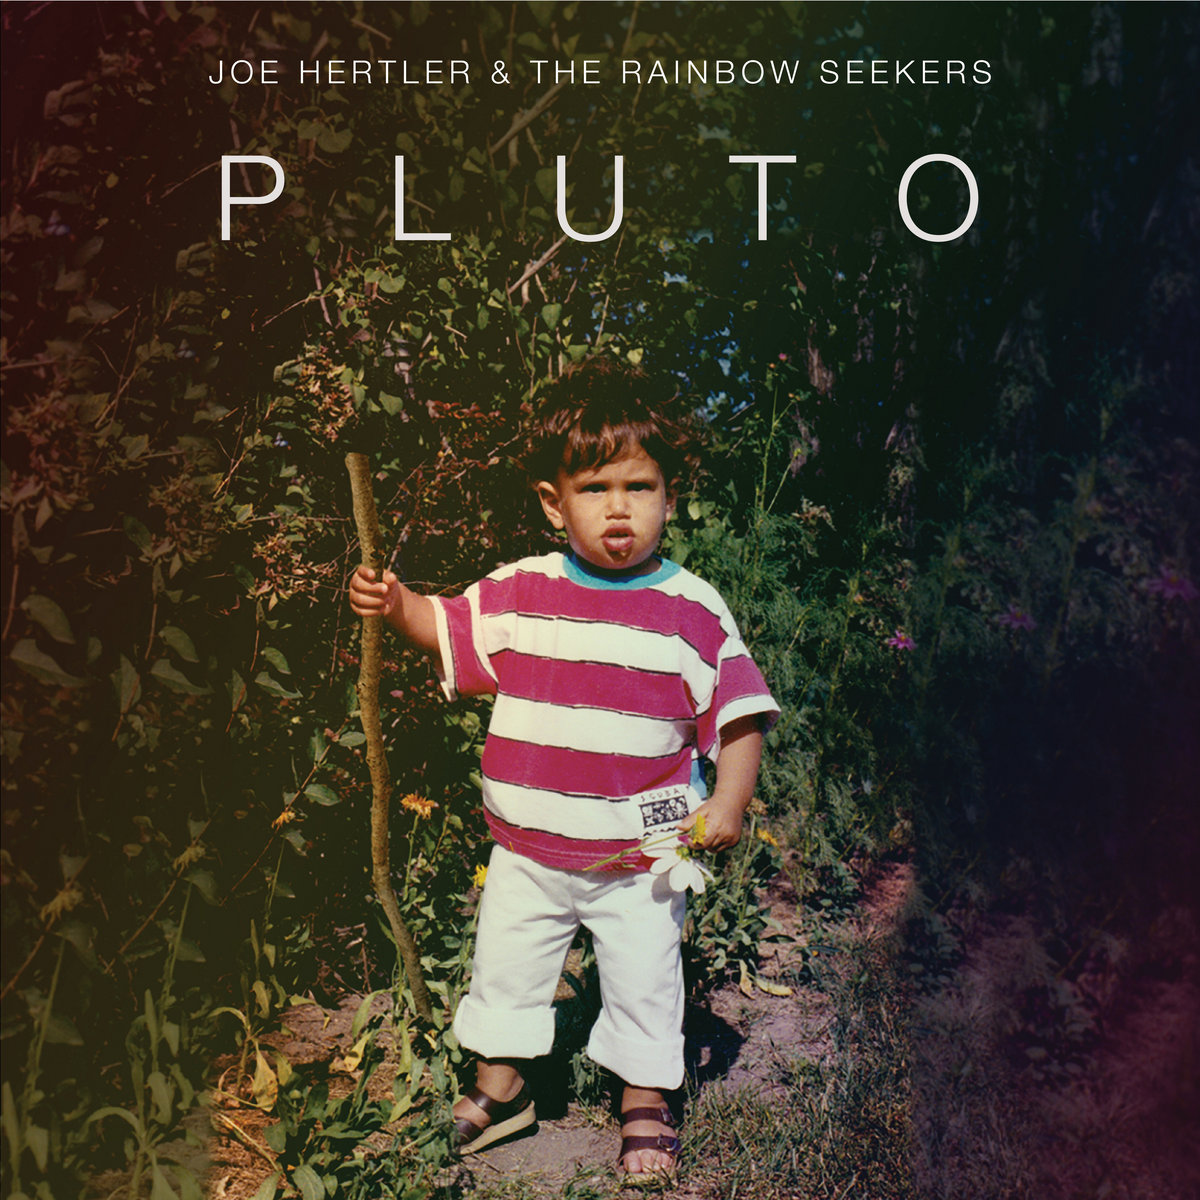 Pluto by Joe Hertler & the Rainbow Seekers